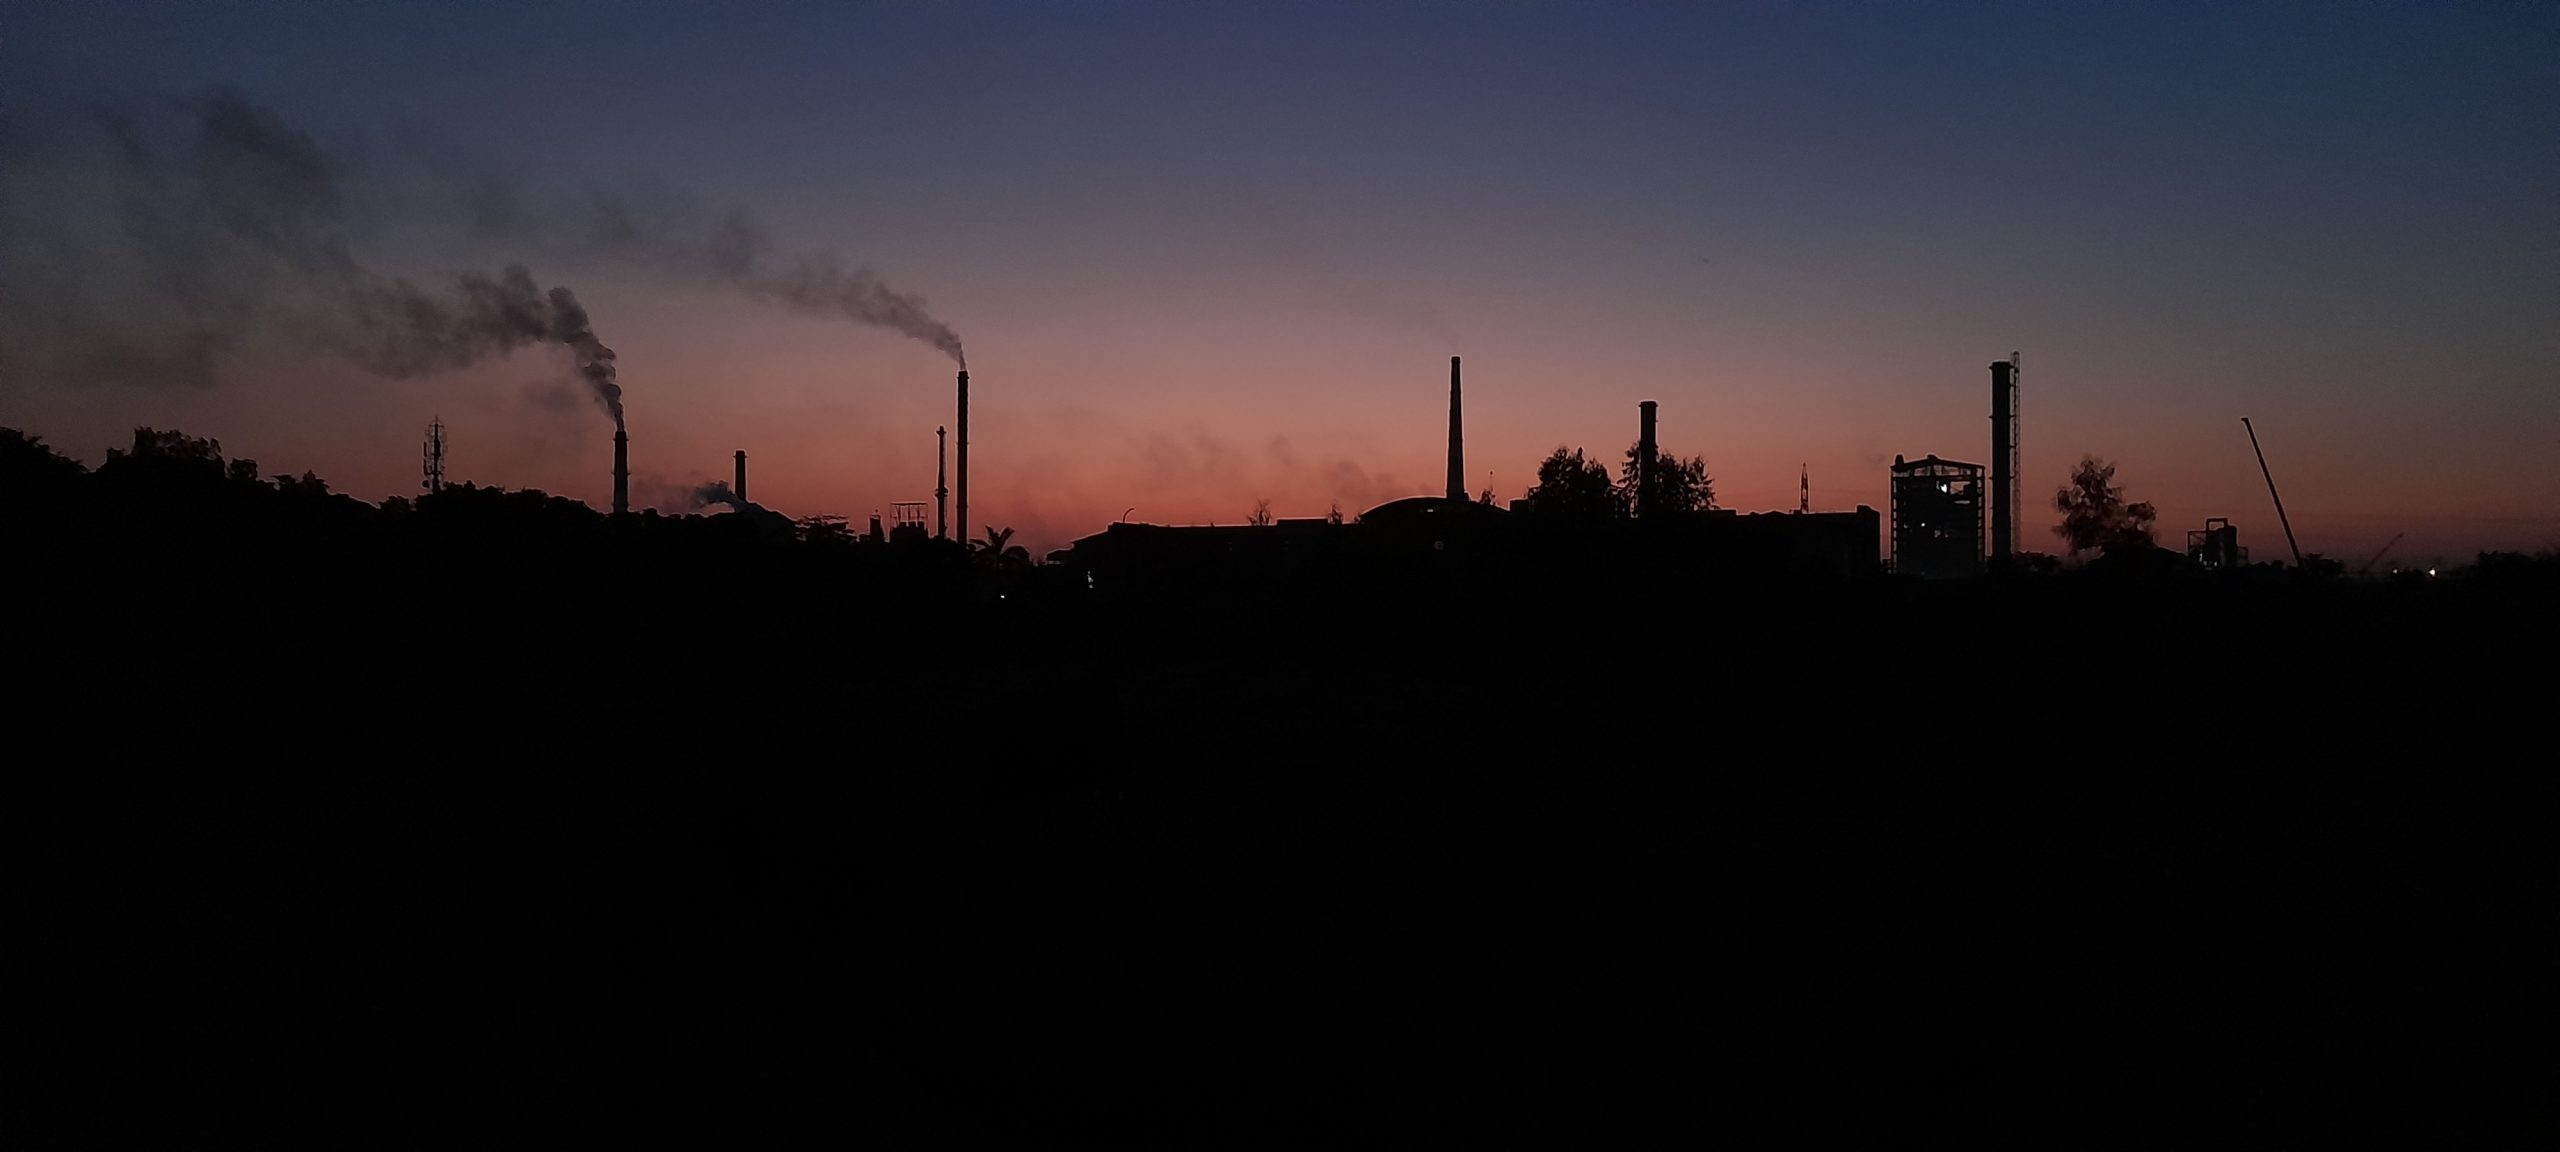 Smoke pollution produced by factory chimnies